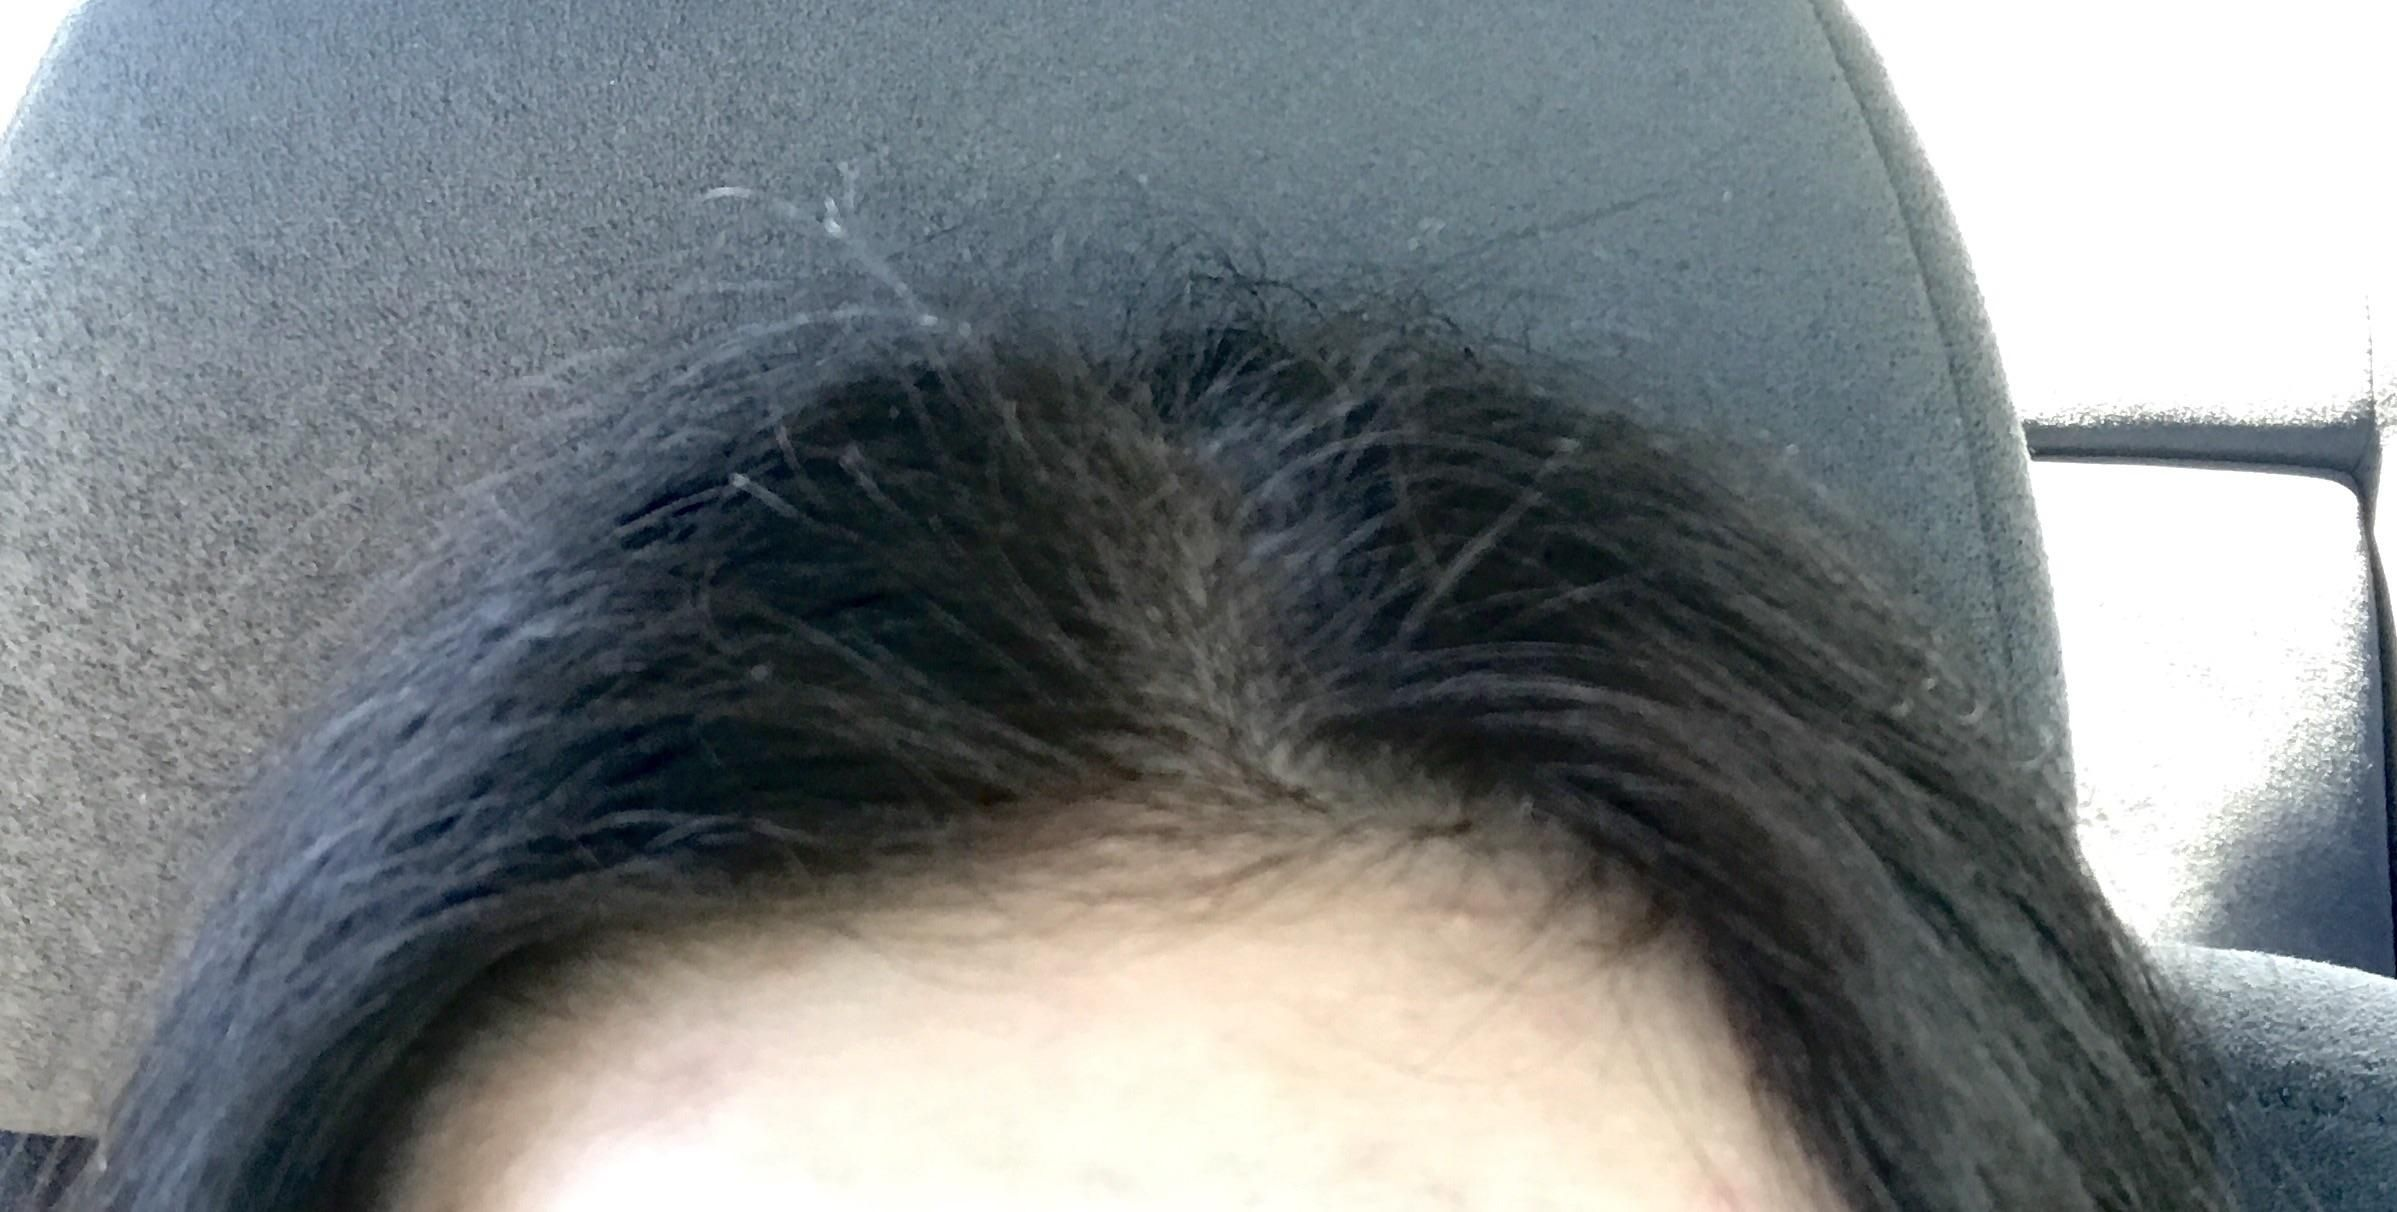 Looking For Advice On How To Tame The Chronic Fly Aways On The Top Of My Head The Rest Of My Hair Is Not Frizzy At All Fly Away Hair Tame